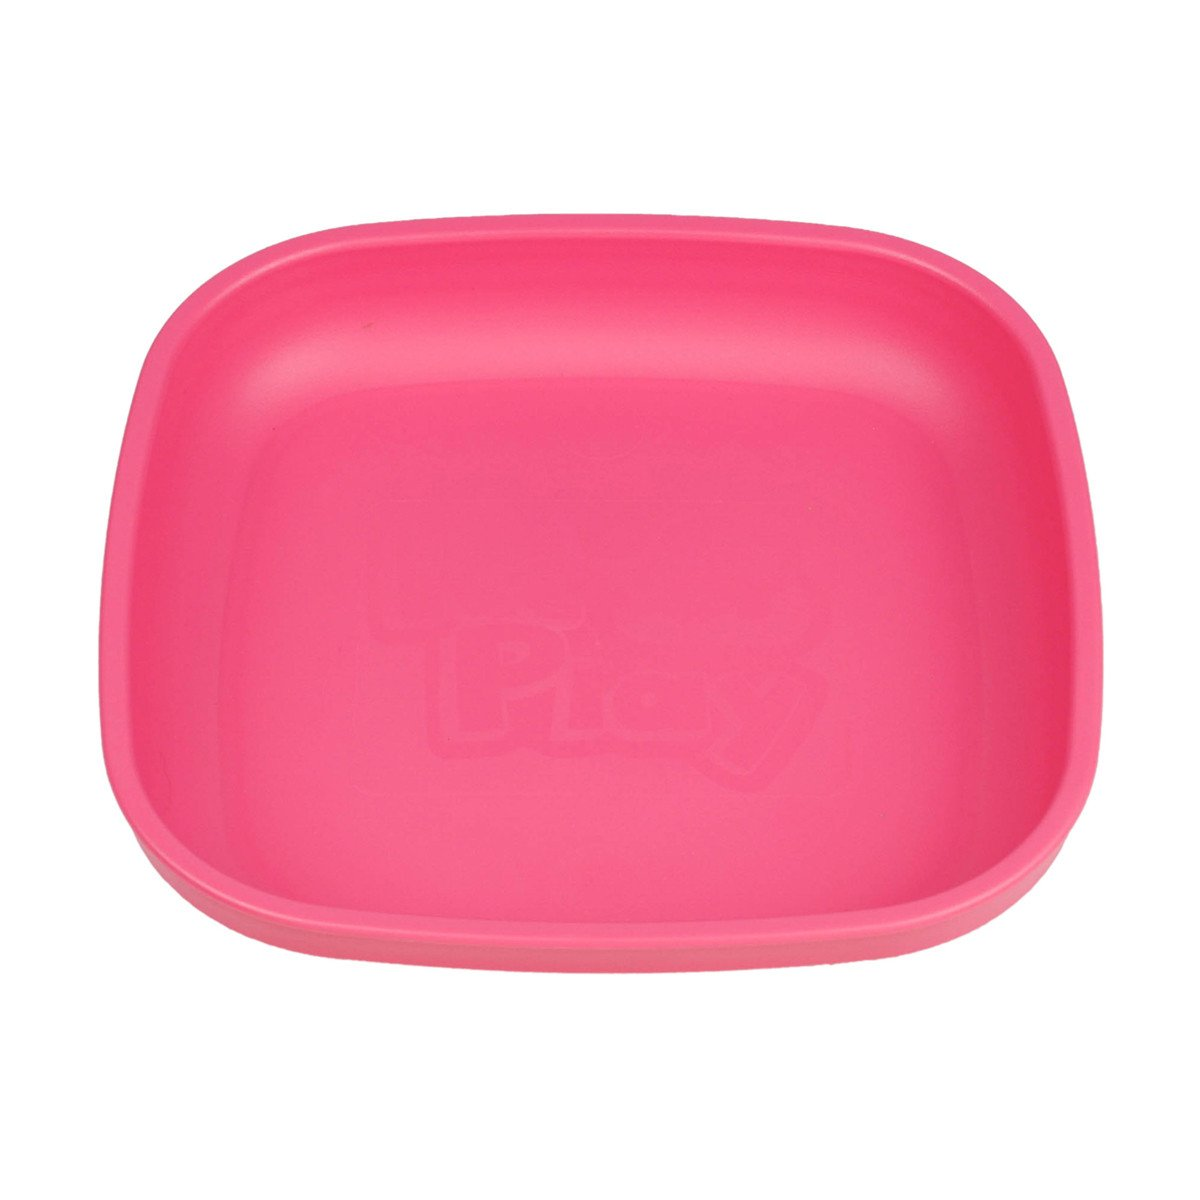 Replay Plate Replay Dinnerware Bright Pink at Little Earth Nest Eco Shop